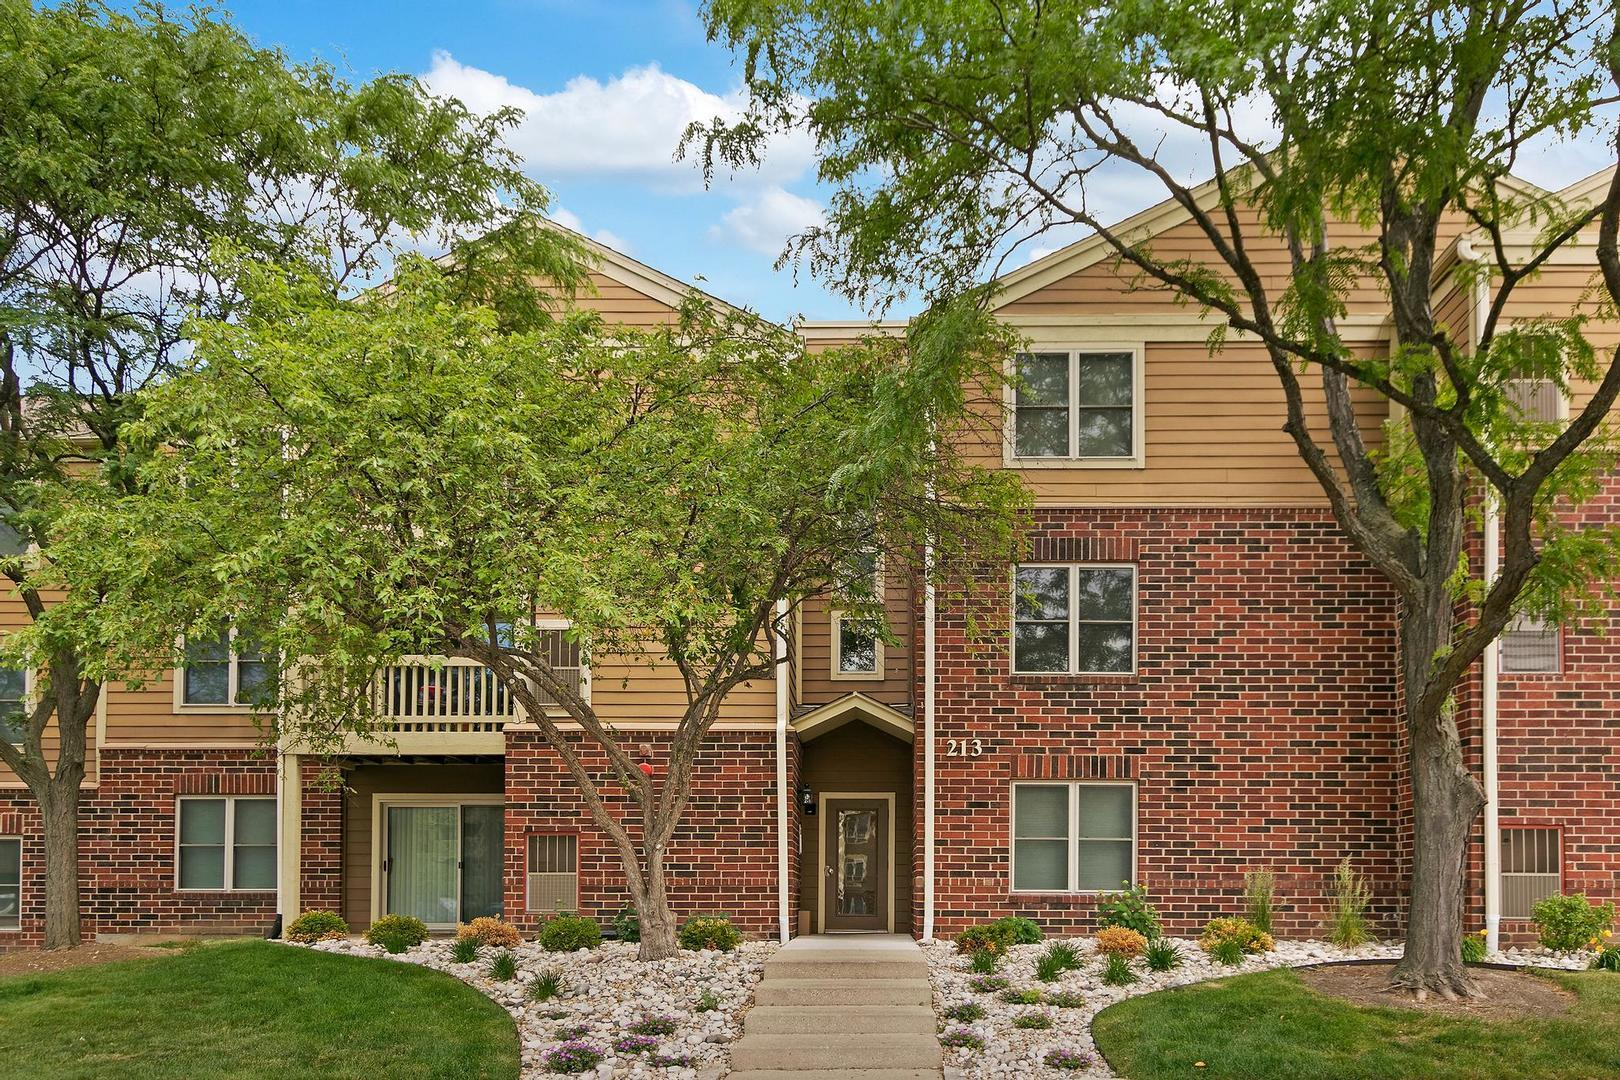 213 Glengarry Drive #2-312, Bloomingdale, IL 60108 - #: 11117547